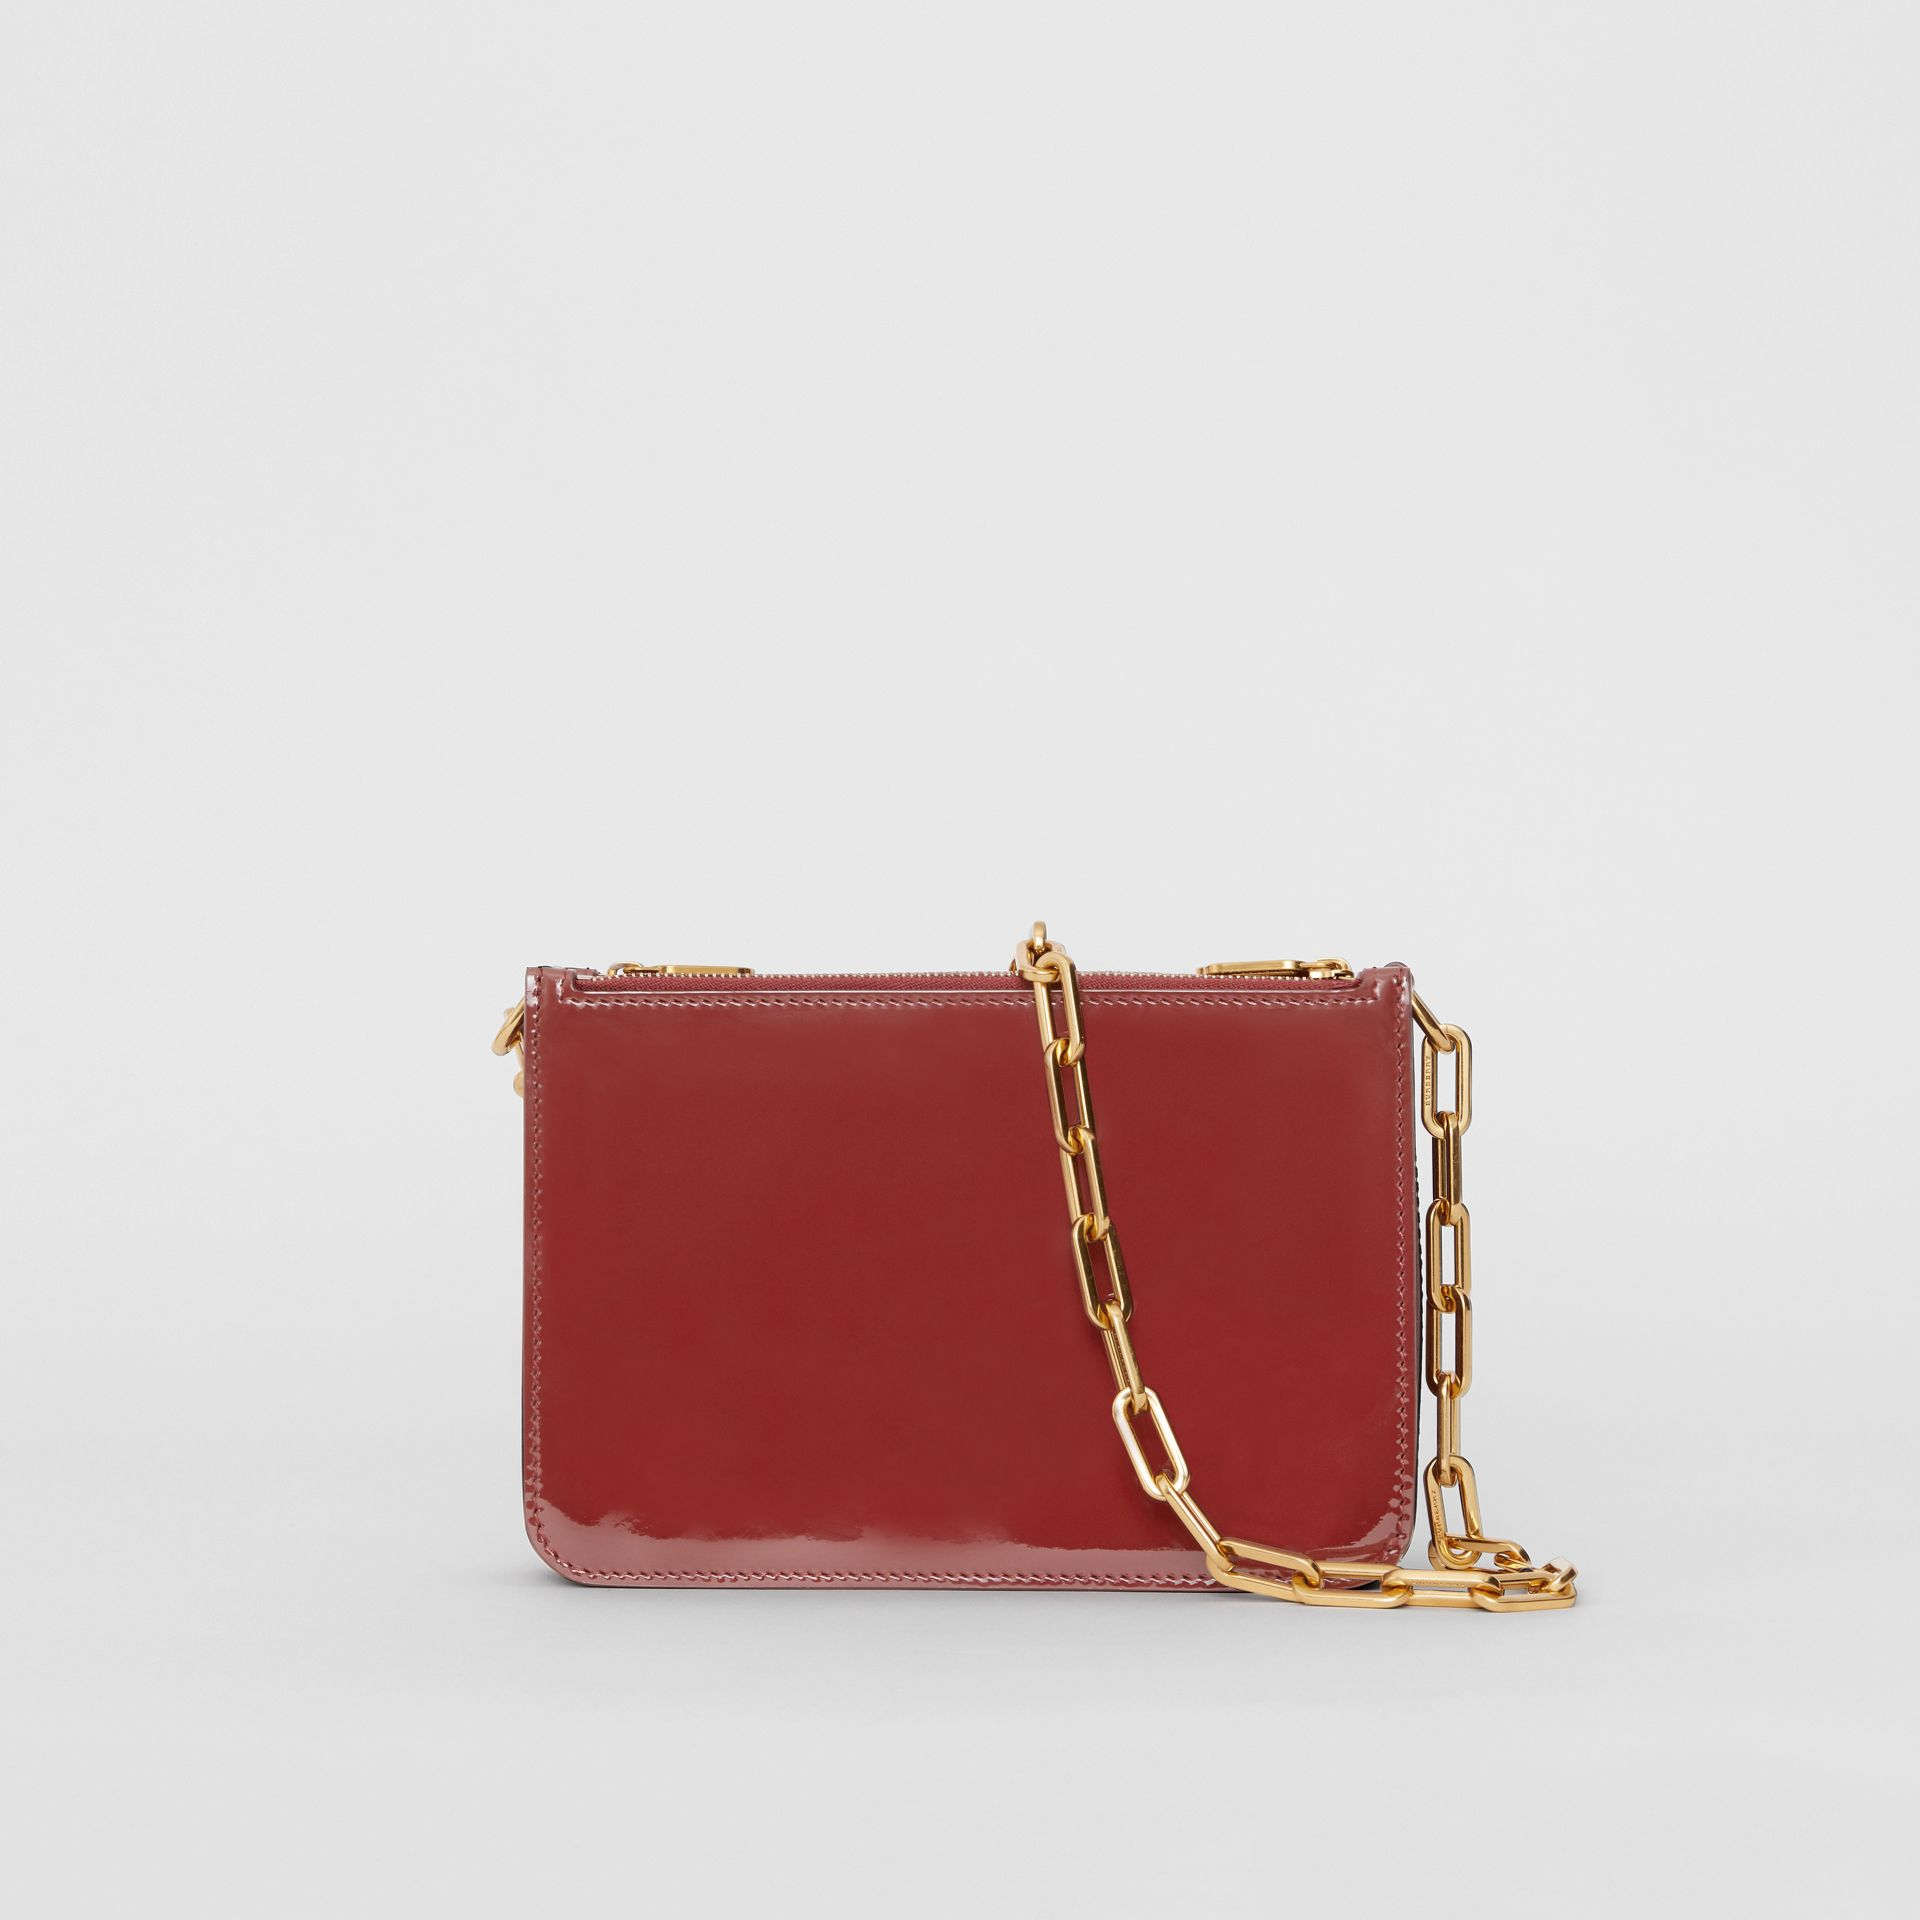 Triple Zip Patent Leather Crossbody Bag in Crimson - Women | Burberry United States - gallery image 7